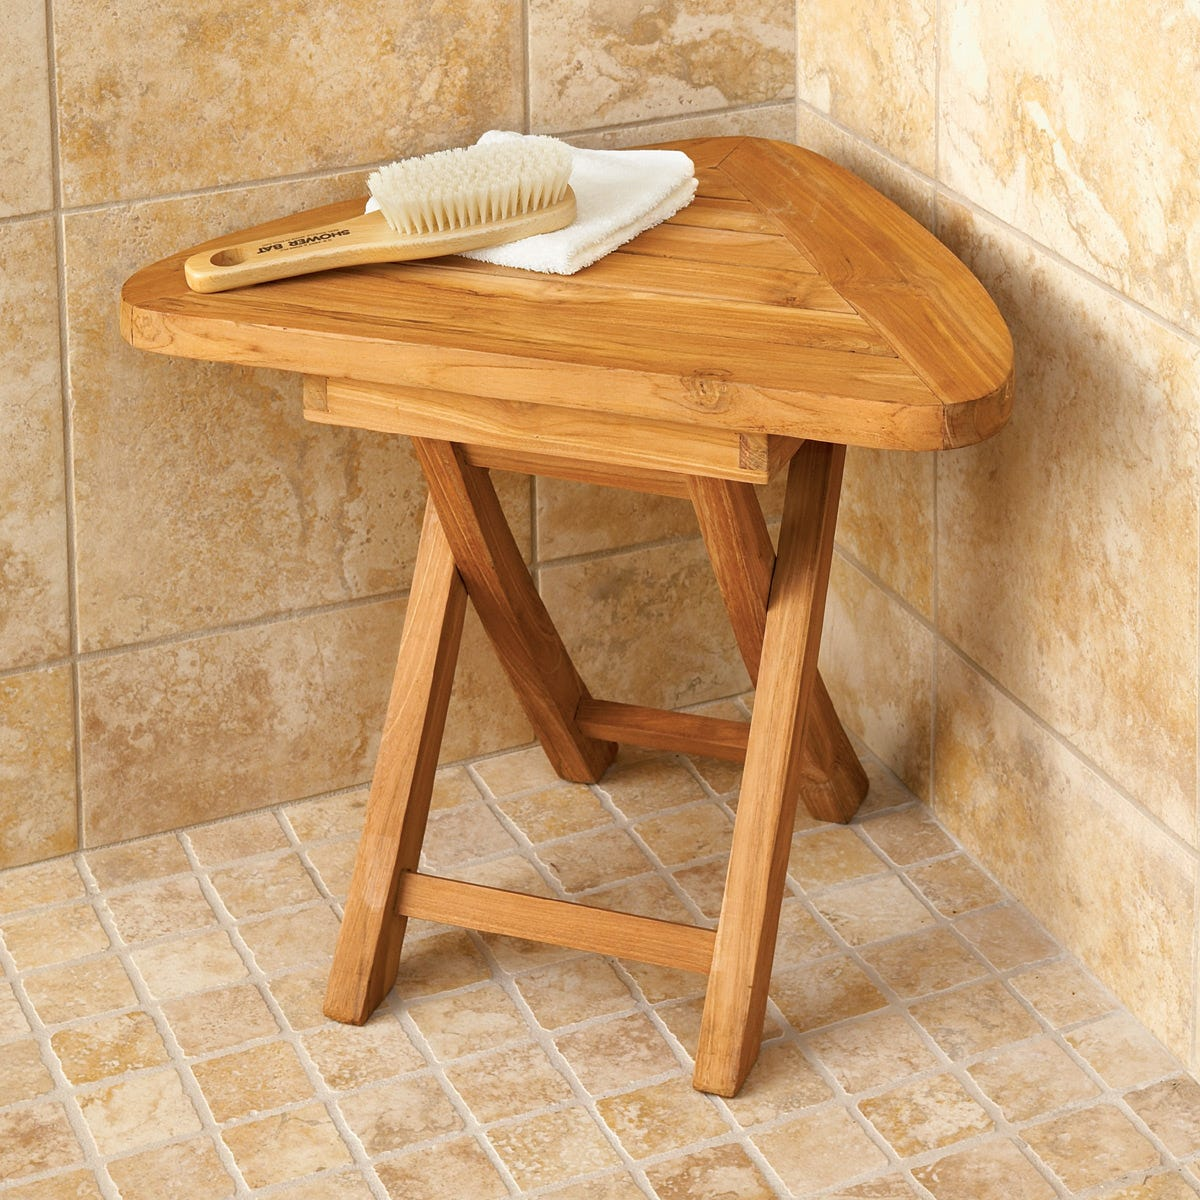 Teak Corner Bath Stool - from Sporty\'s Wright Bros Collection